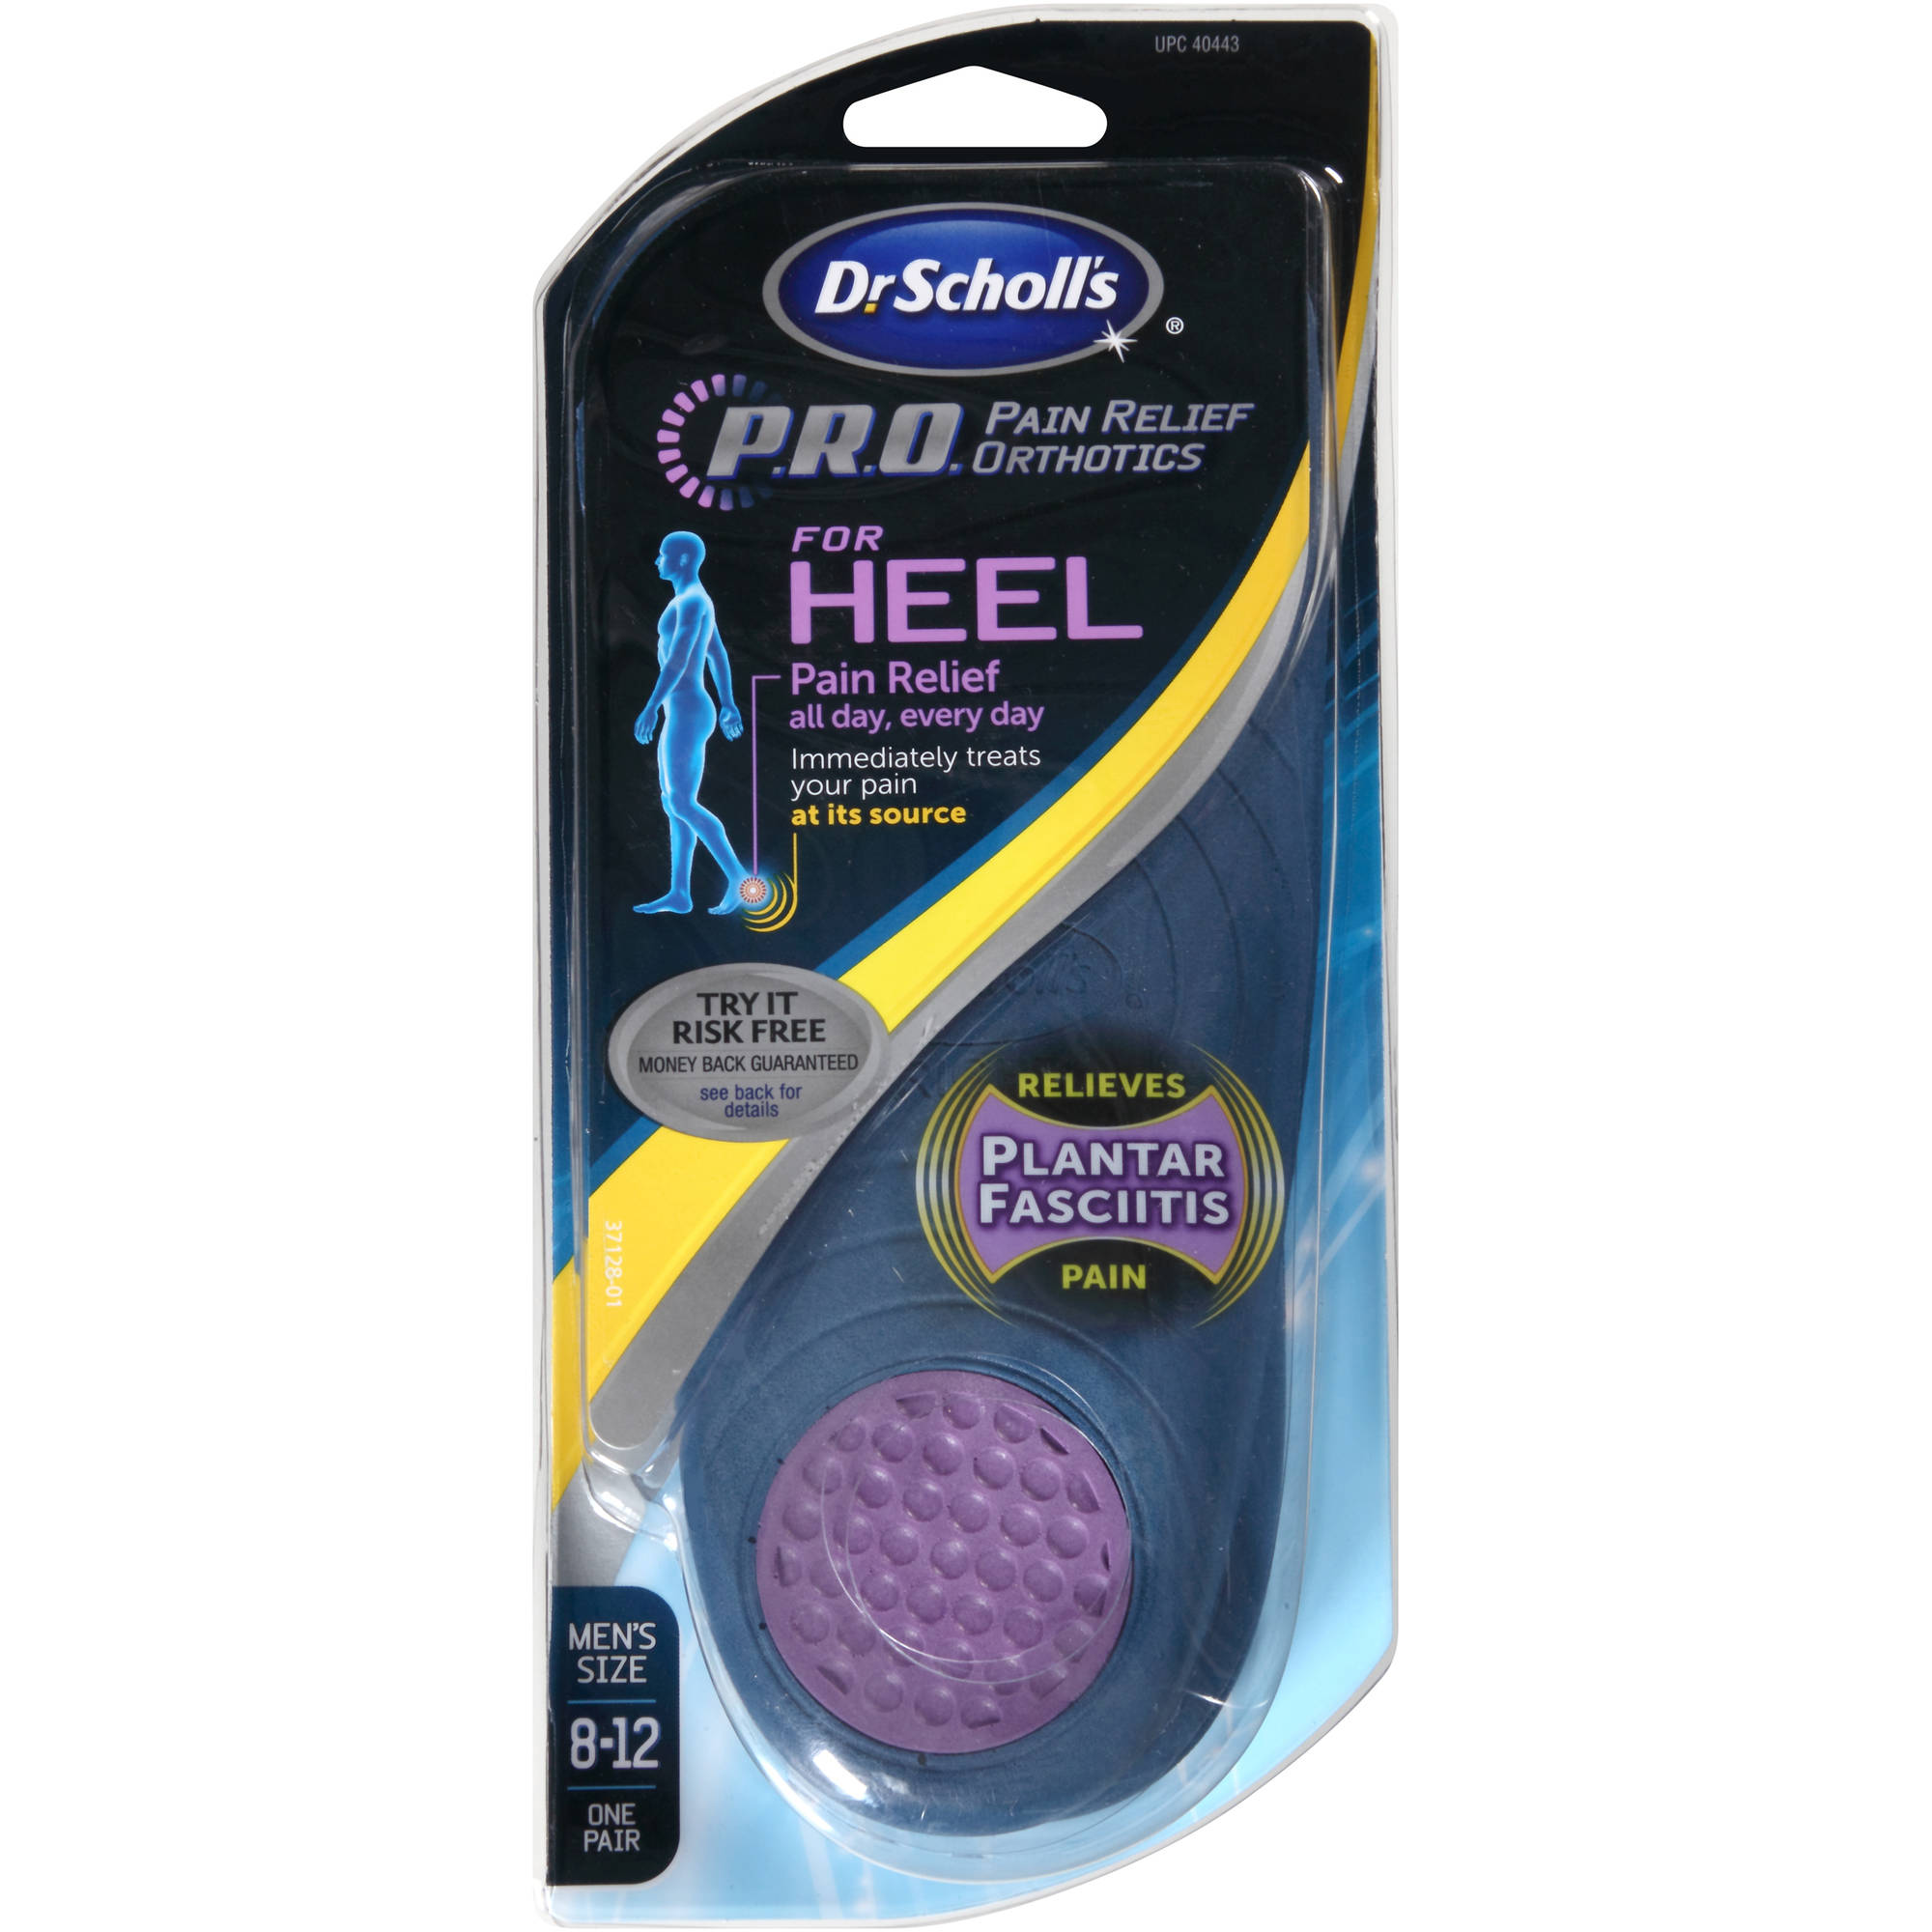 Dr. Scholl's P.R.O. Pain Relief Orthotics for Heel, 1 pr